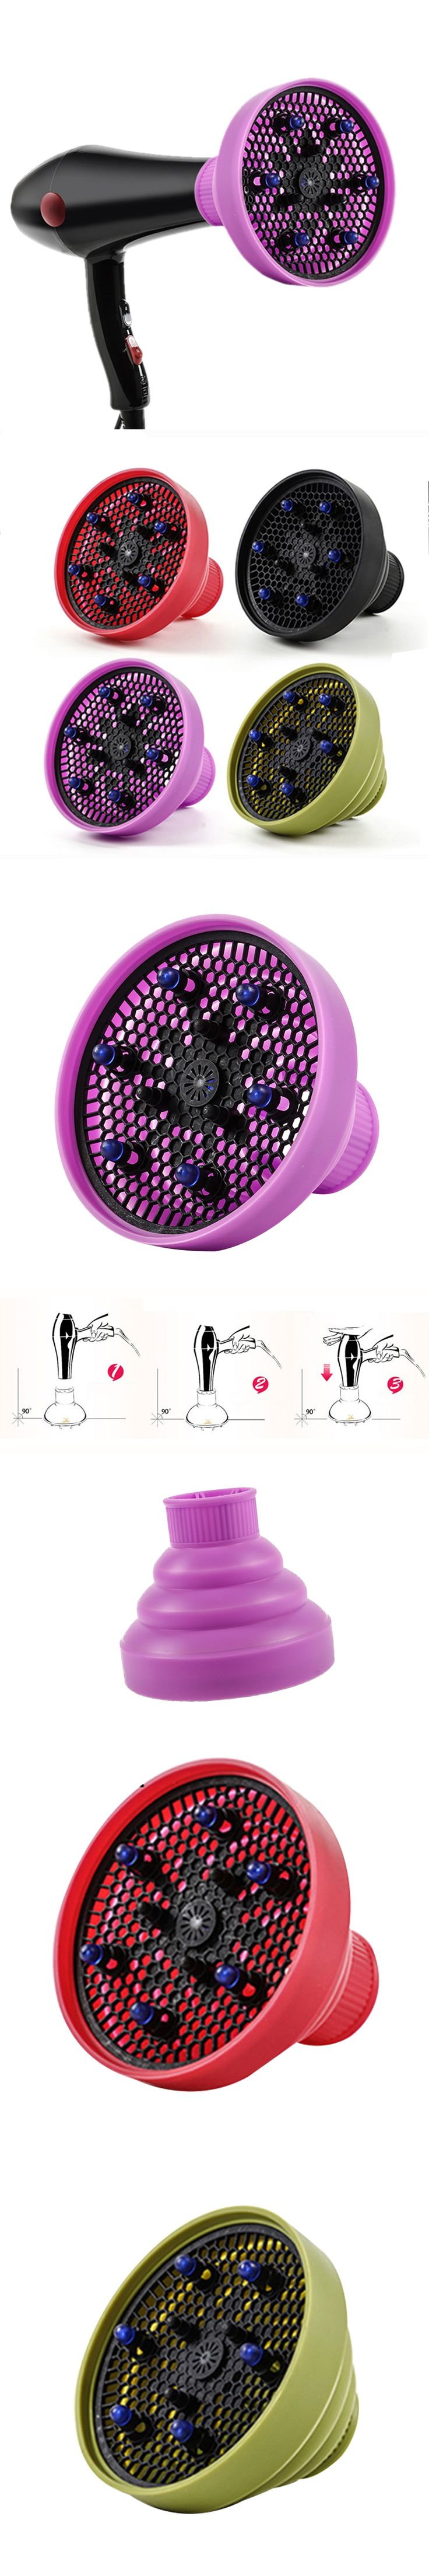 Hot selling Foldable Silicone Salon Curly Hair Dryer Diffuser Cover Styling Hairdressing Curl DIY Blower Makeup Tool Accessory